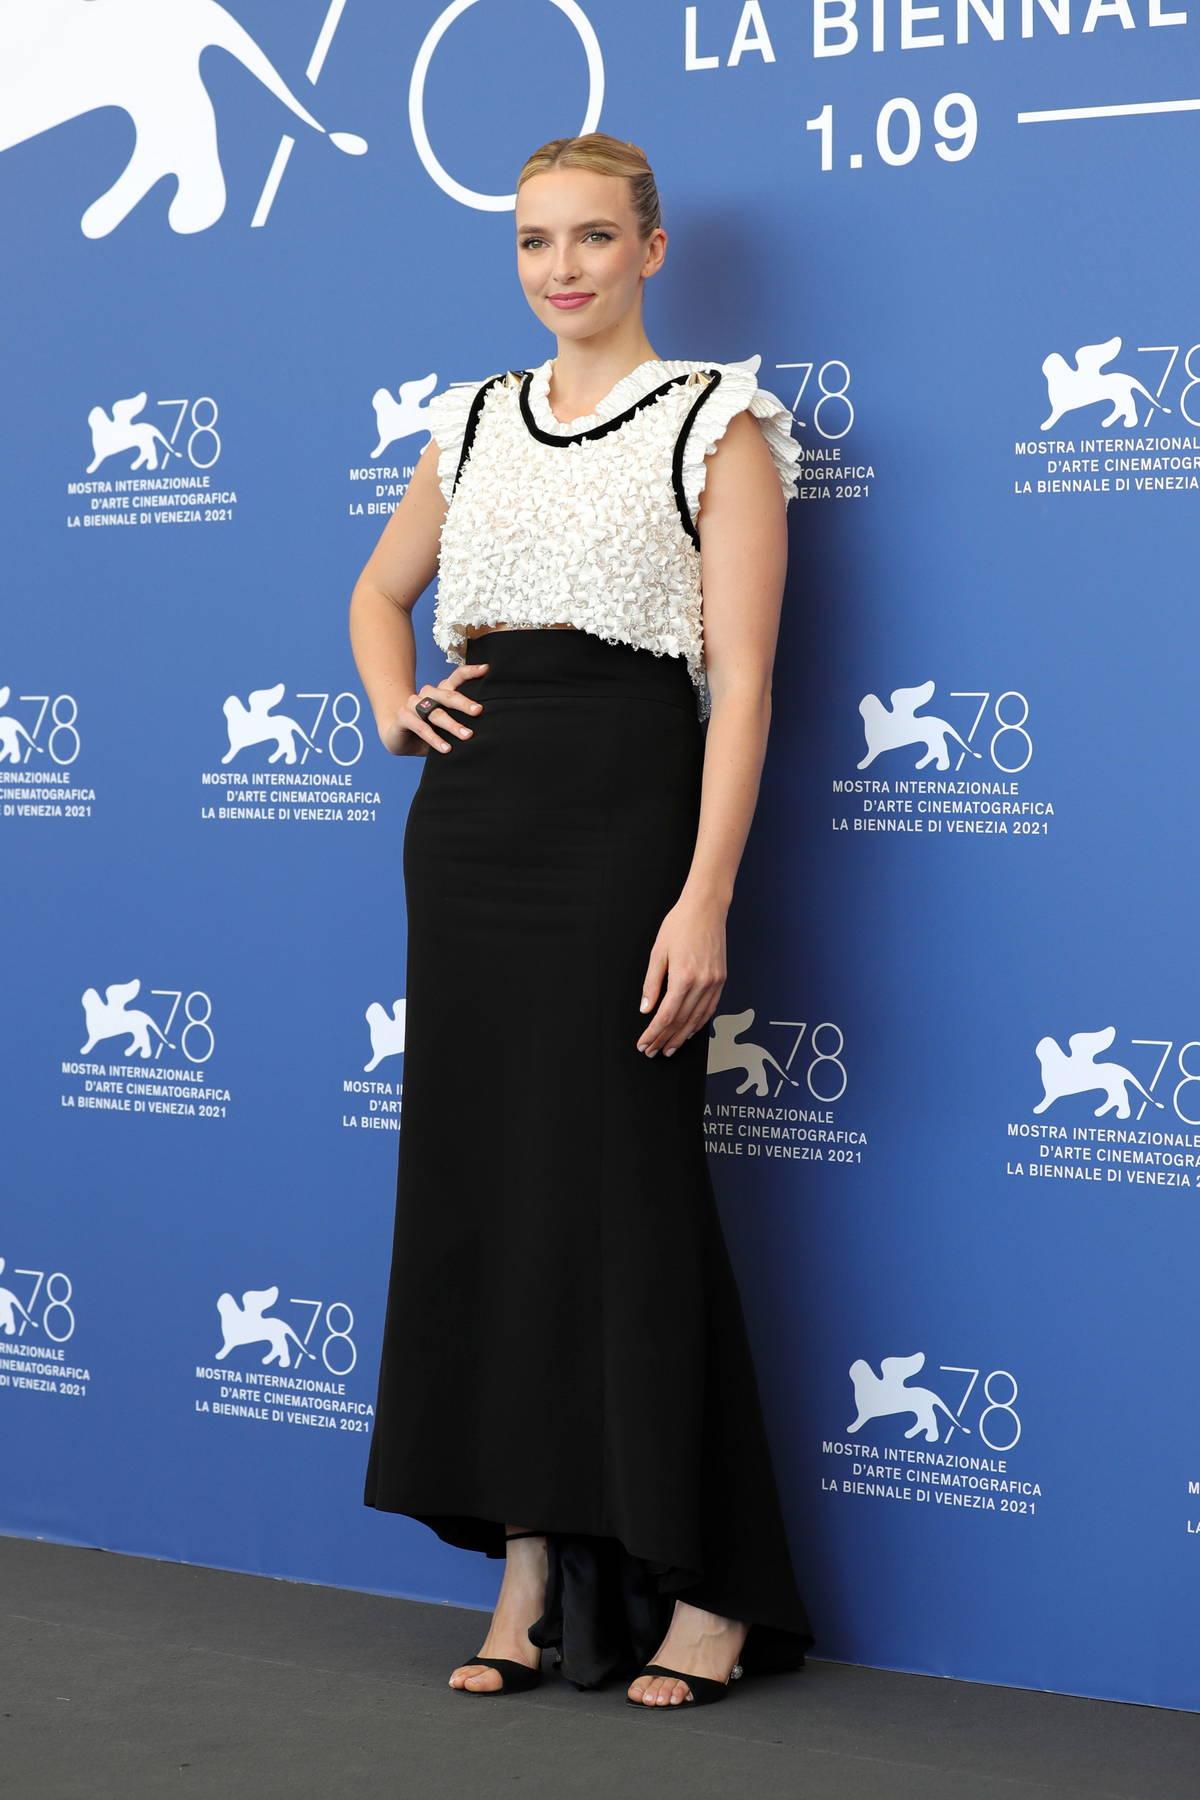 Jodie Comer attends the photocall for 'The Last Duel' during the 78th Venice International Film Festival in Venice, Italy